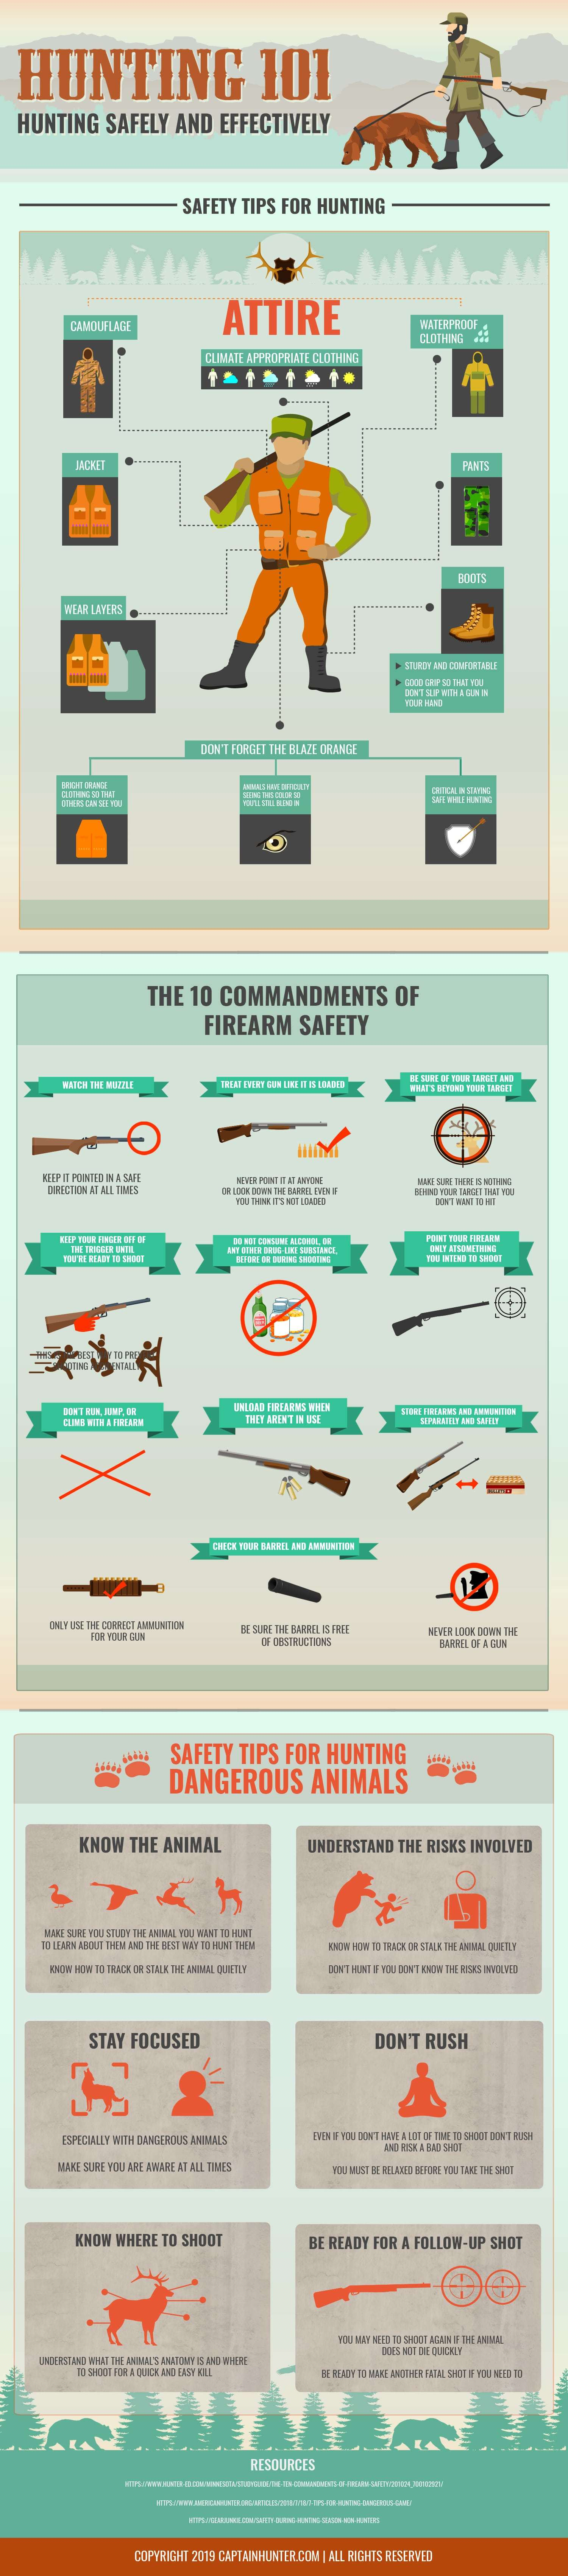 Hunting101 Hunting Safely and Effectively